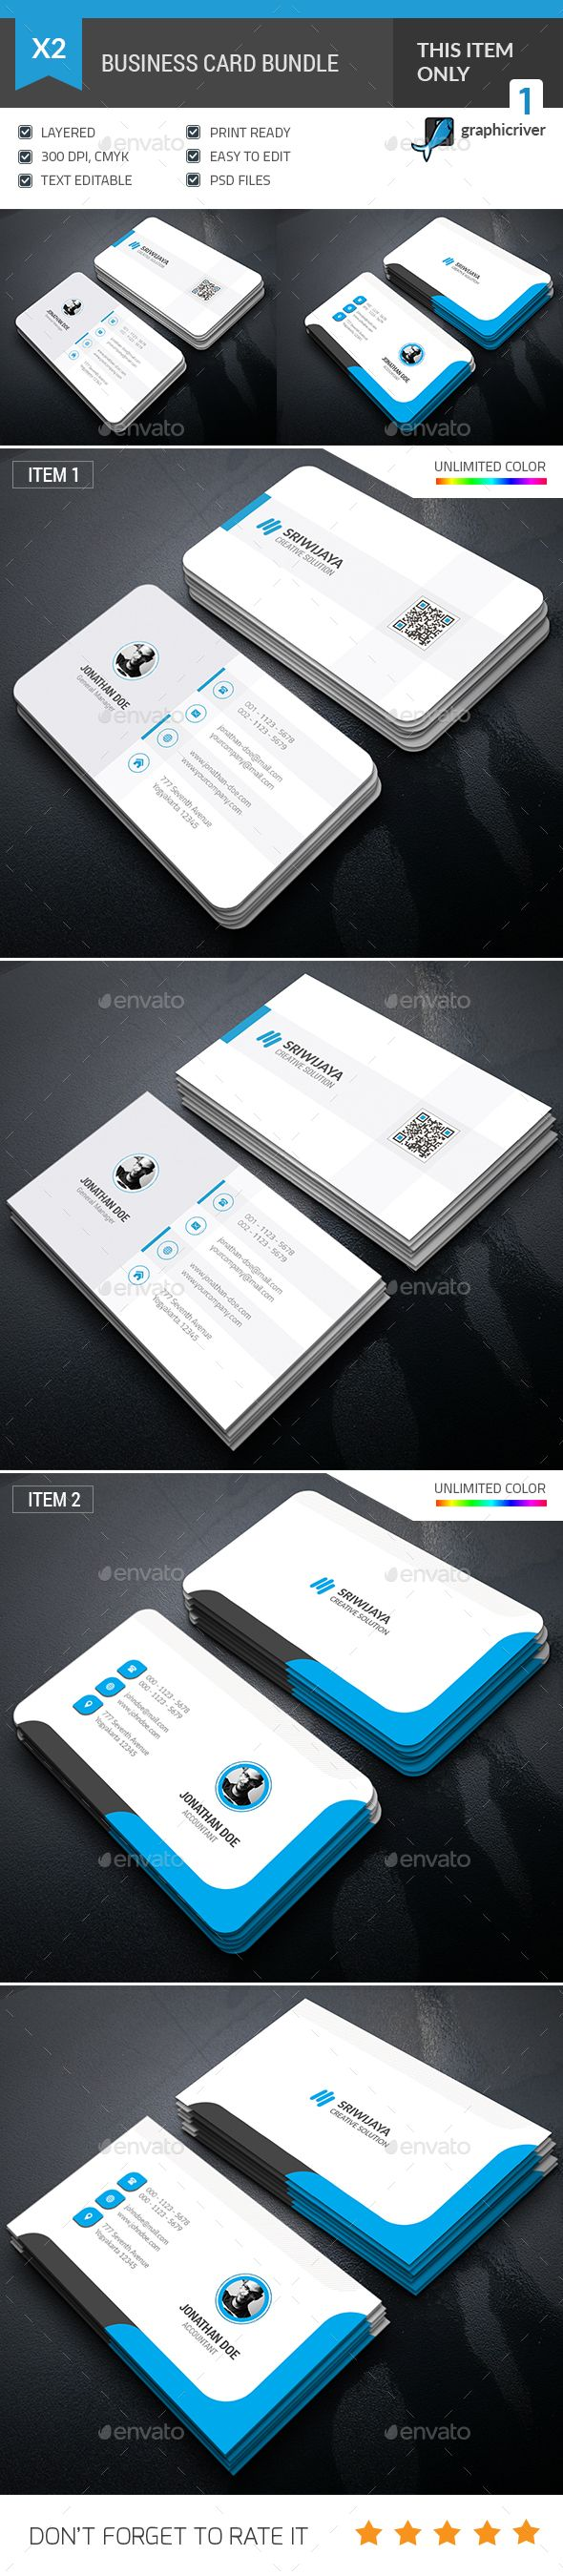 262 best Business Card Design images on Pinterest | Corporate ...